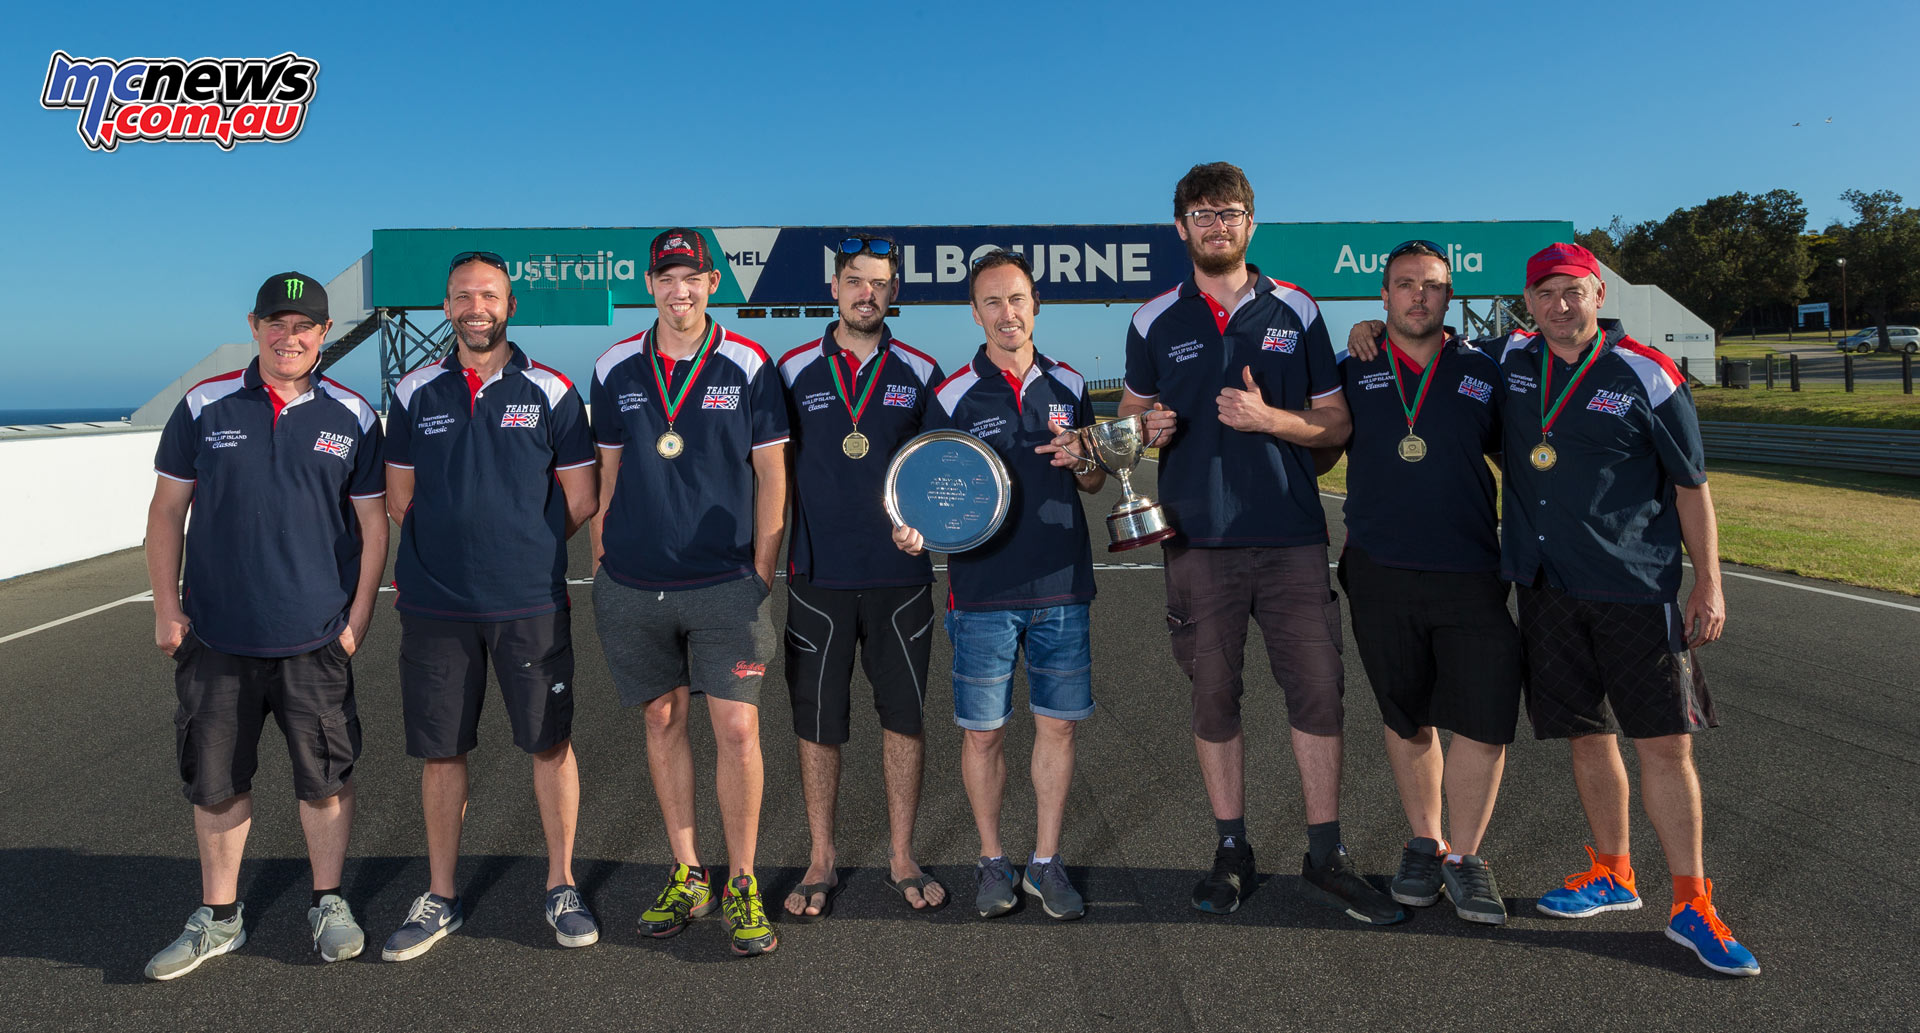 Team UK wins the International Challenge with an 11-point lead over Team Australia